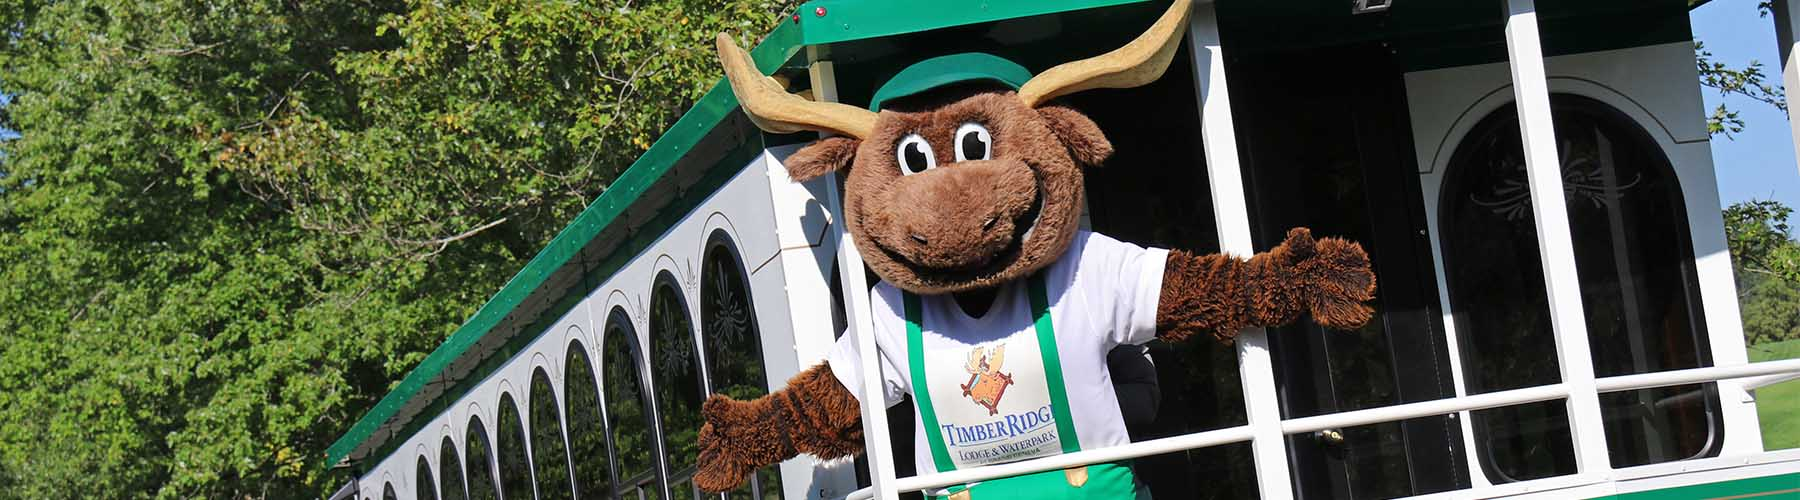 Timber Ridge Bruce the Moose on Trolley